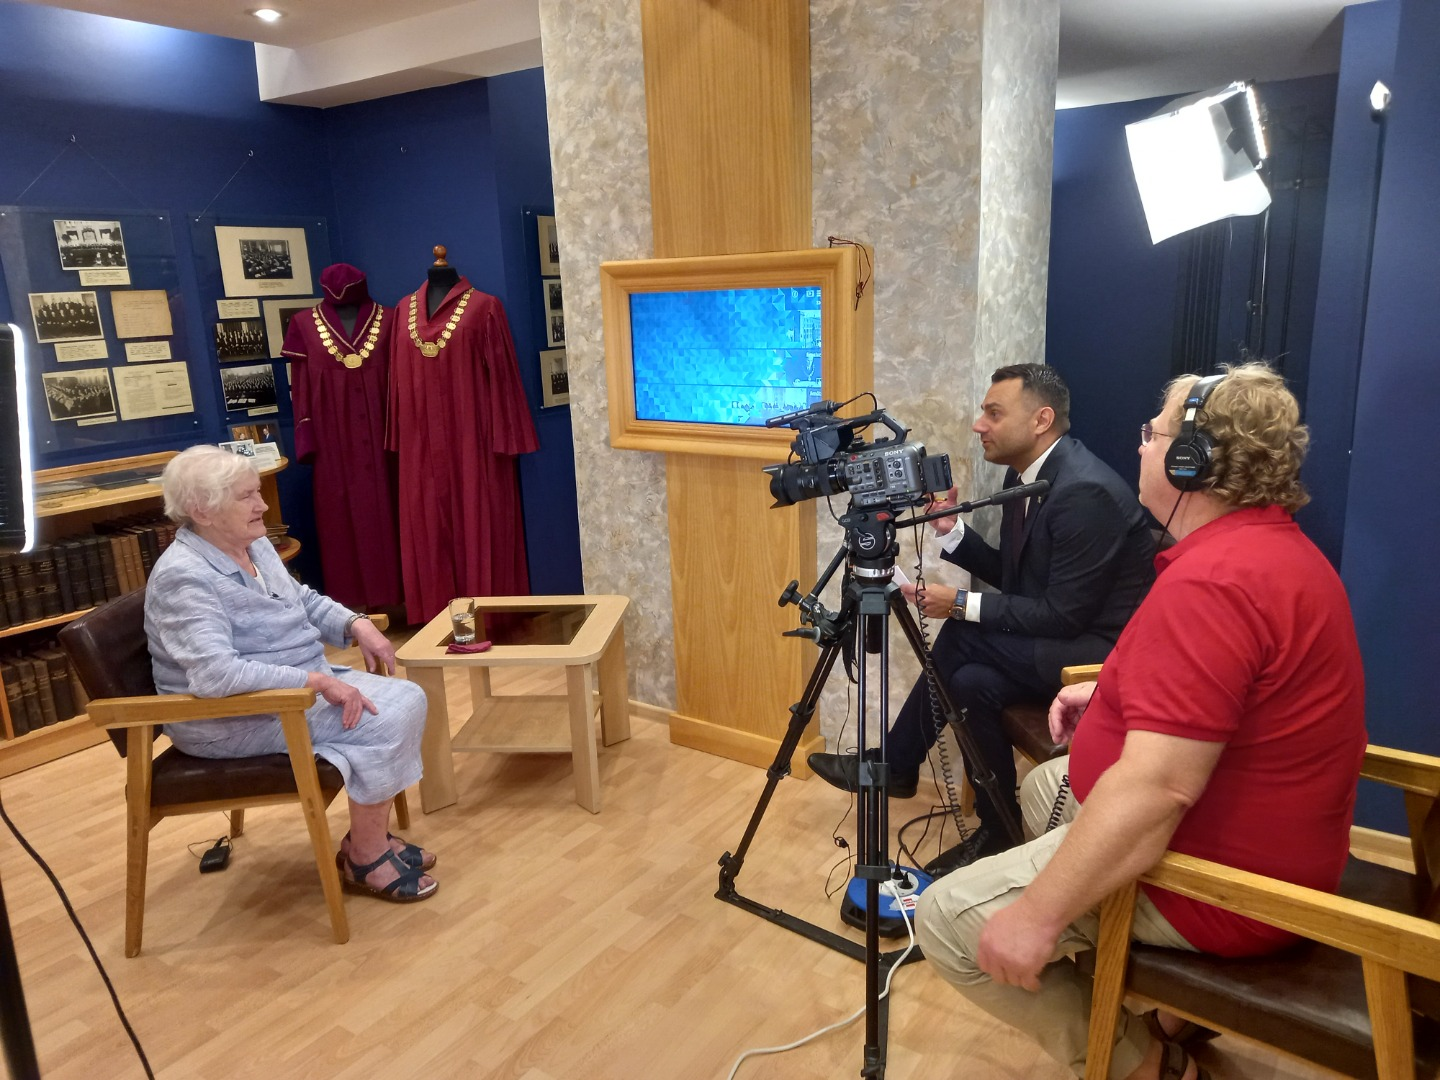 28.07.2021. Video interviews to preserve the memories of the members of the working group for the development of the Administrative Procedure Law about their work more than 20 years ago